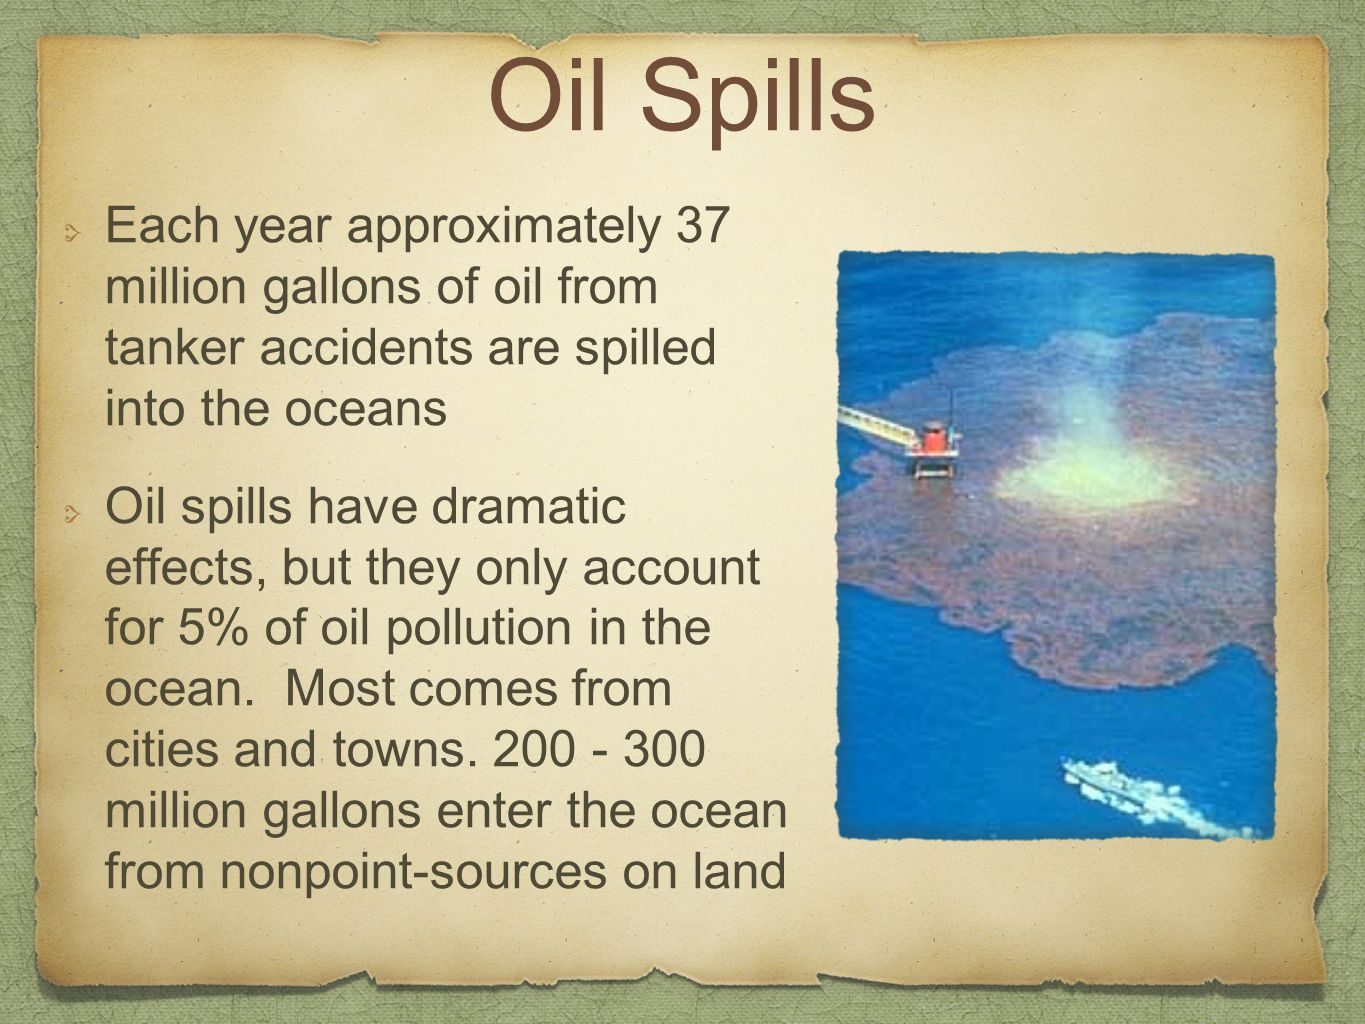 Oil Spills Each year approximately 37 million gallons of oil from tanker accidents are spilled into the oceans.